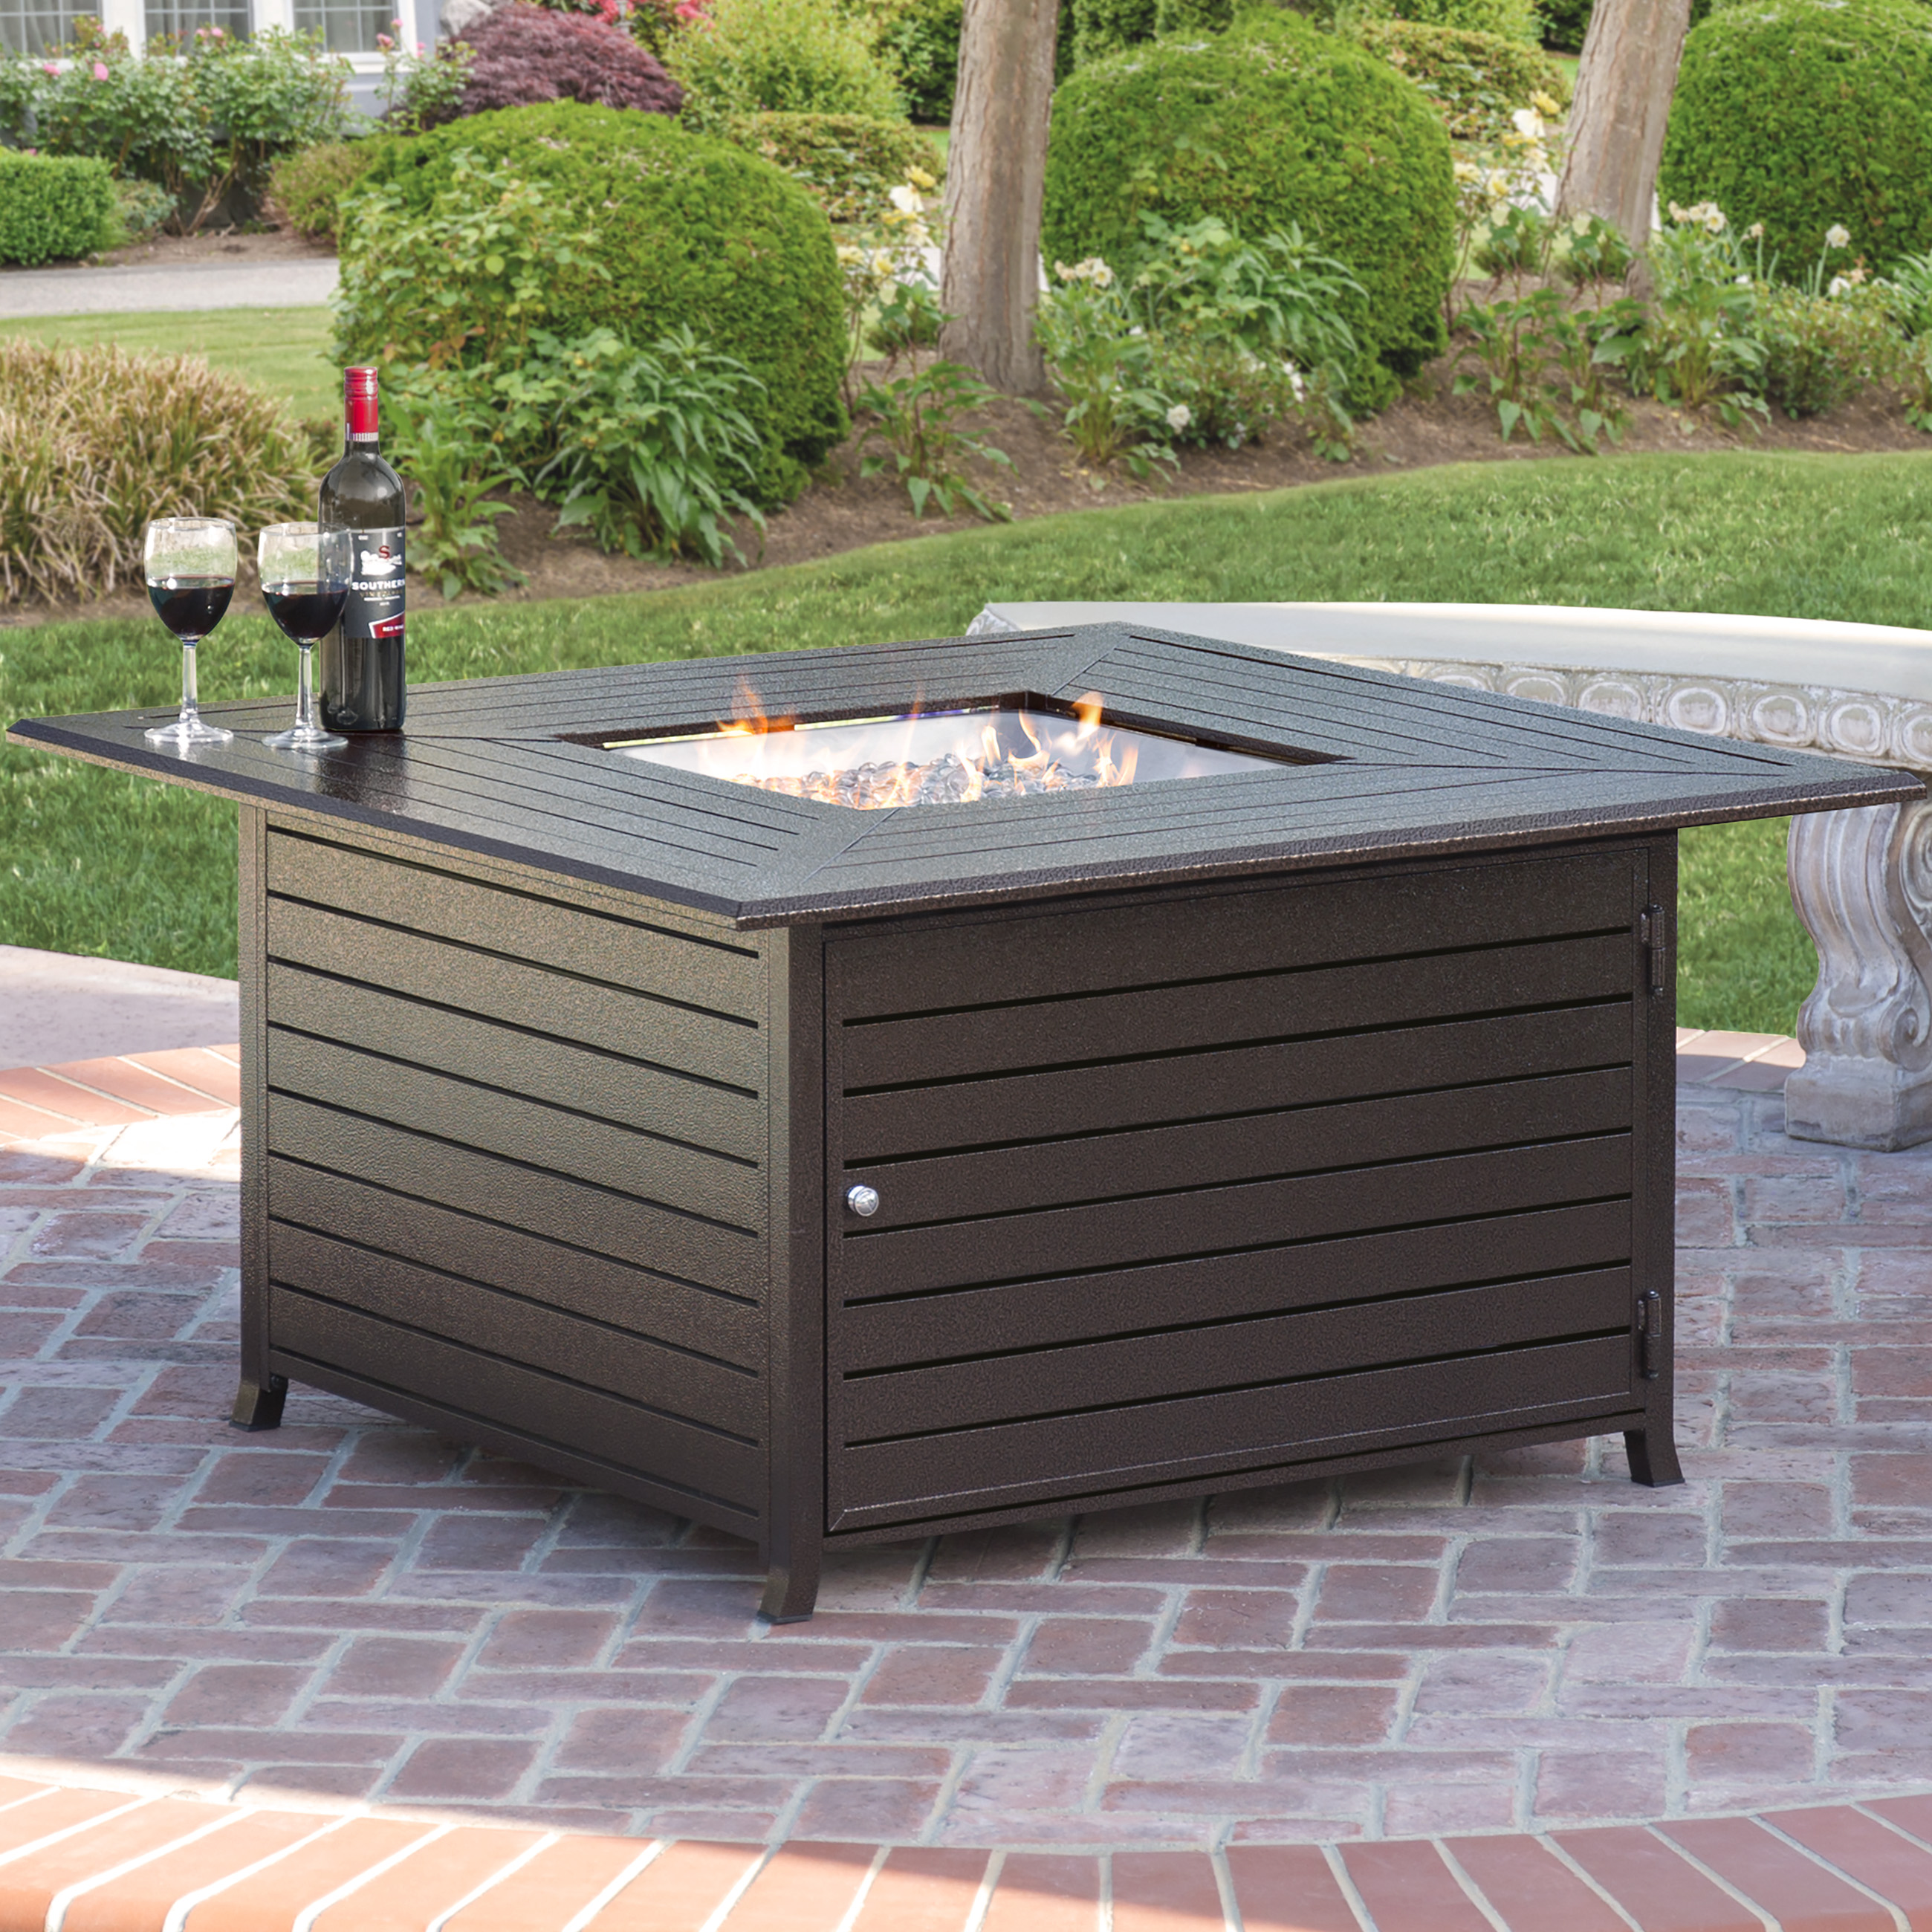 Best Choice Products Extruded Aluminum Gas Outdoor Fire Pit Table With Cover Part 53